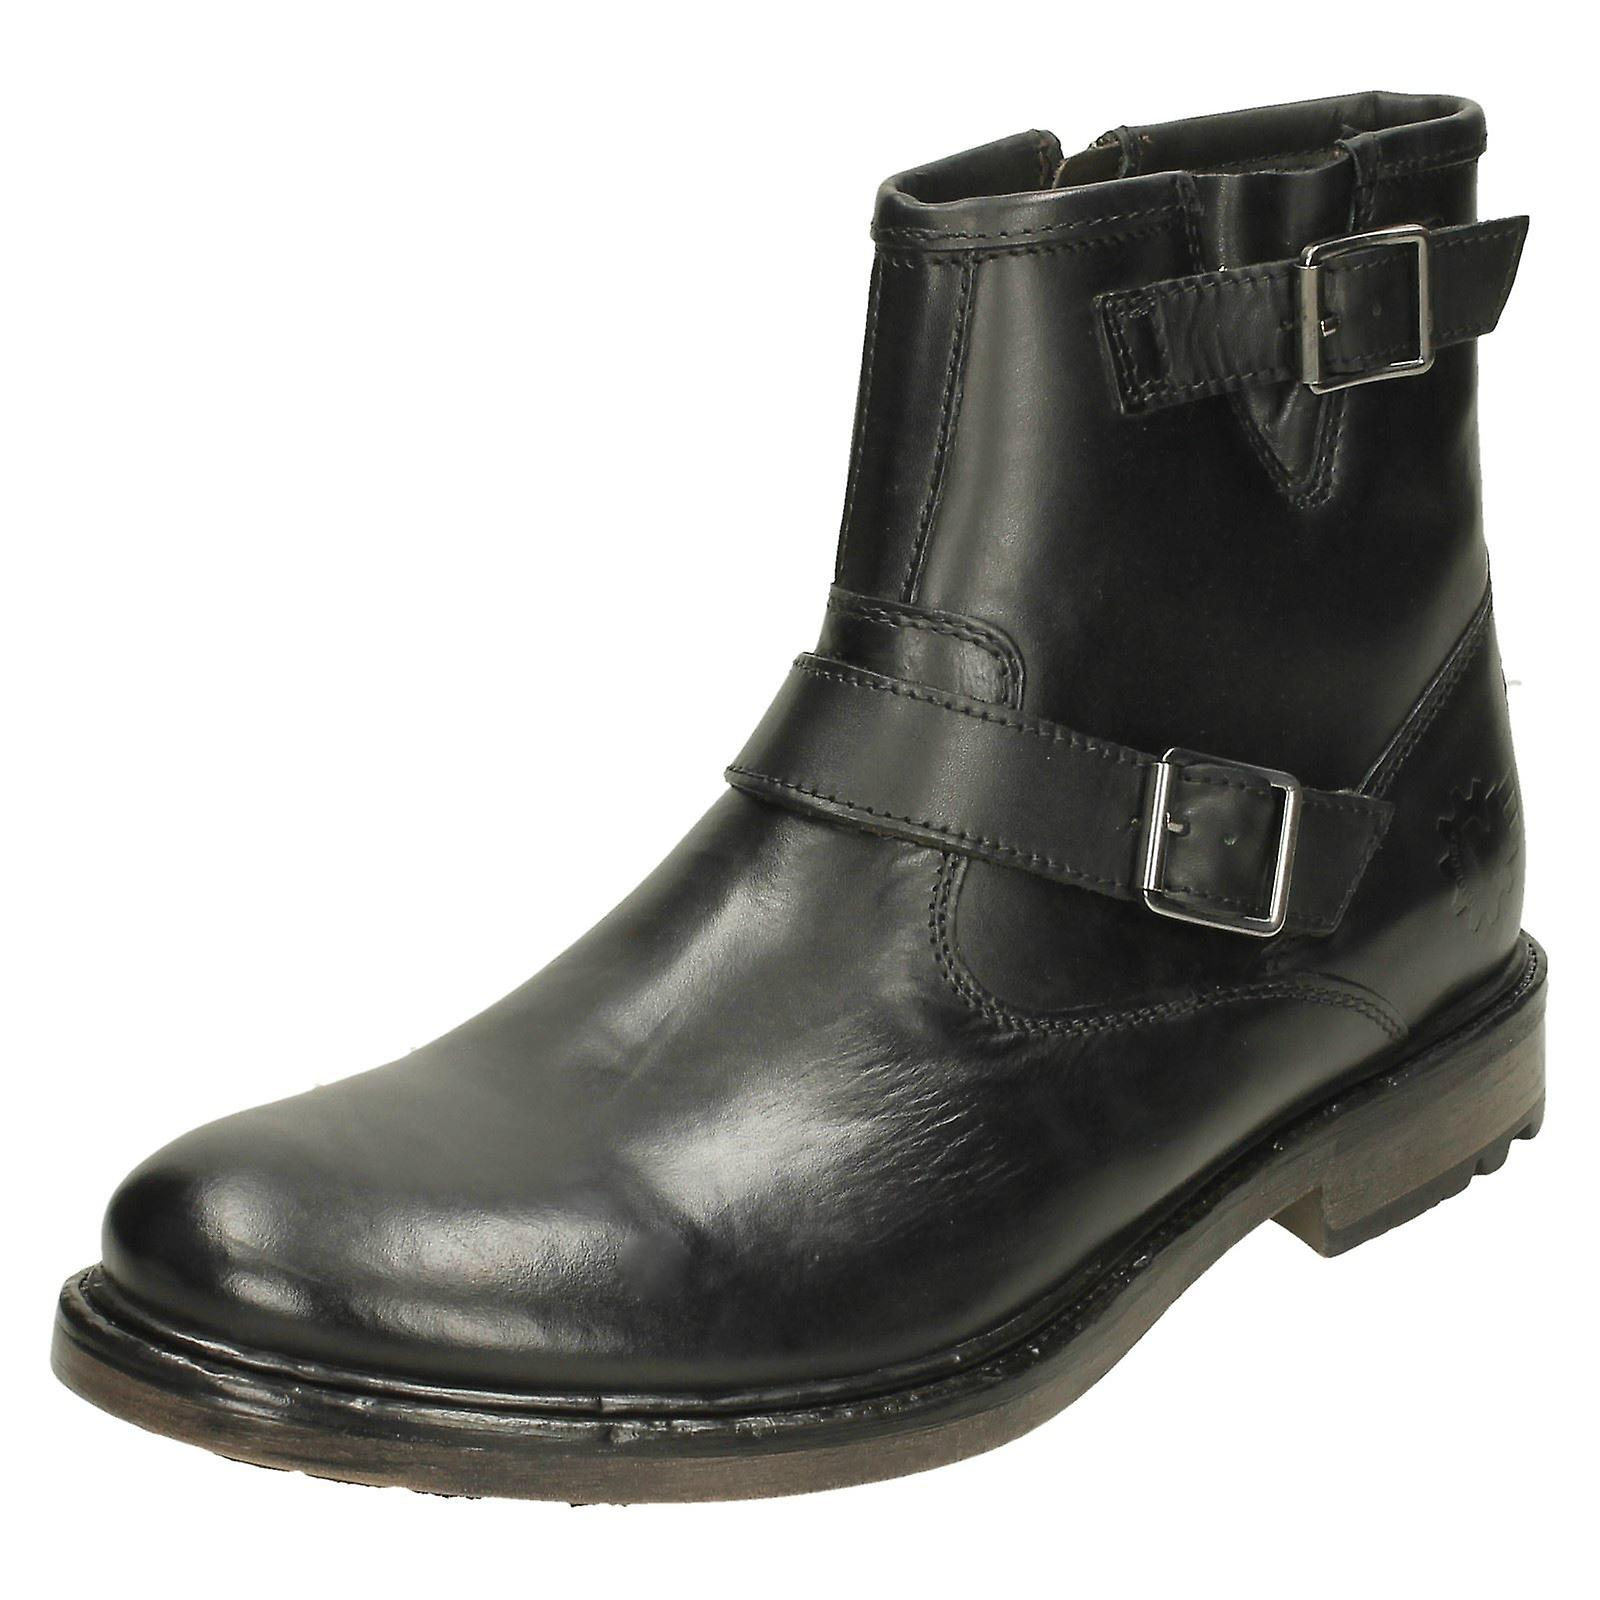 85424893bec Mens Base London Buckle Detail Ankle Boots Zinc - Waxy Black Leather - UK  Size 6 - EU Size 40 - US Size 7